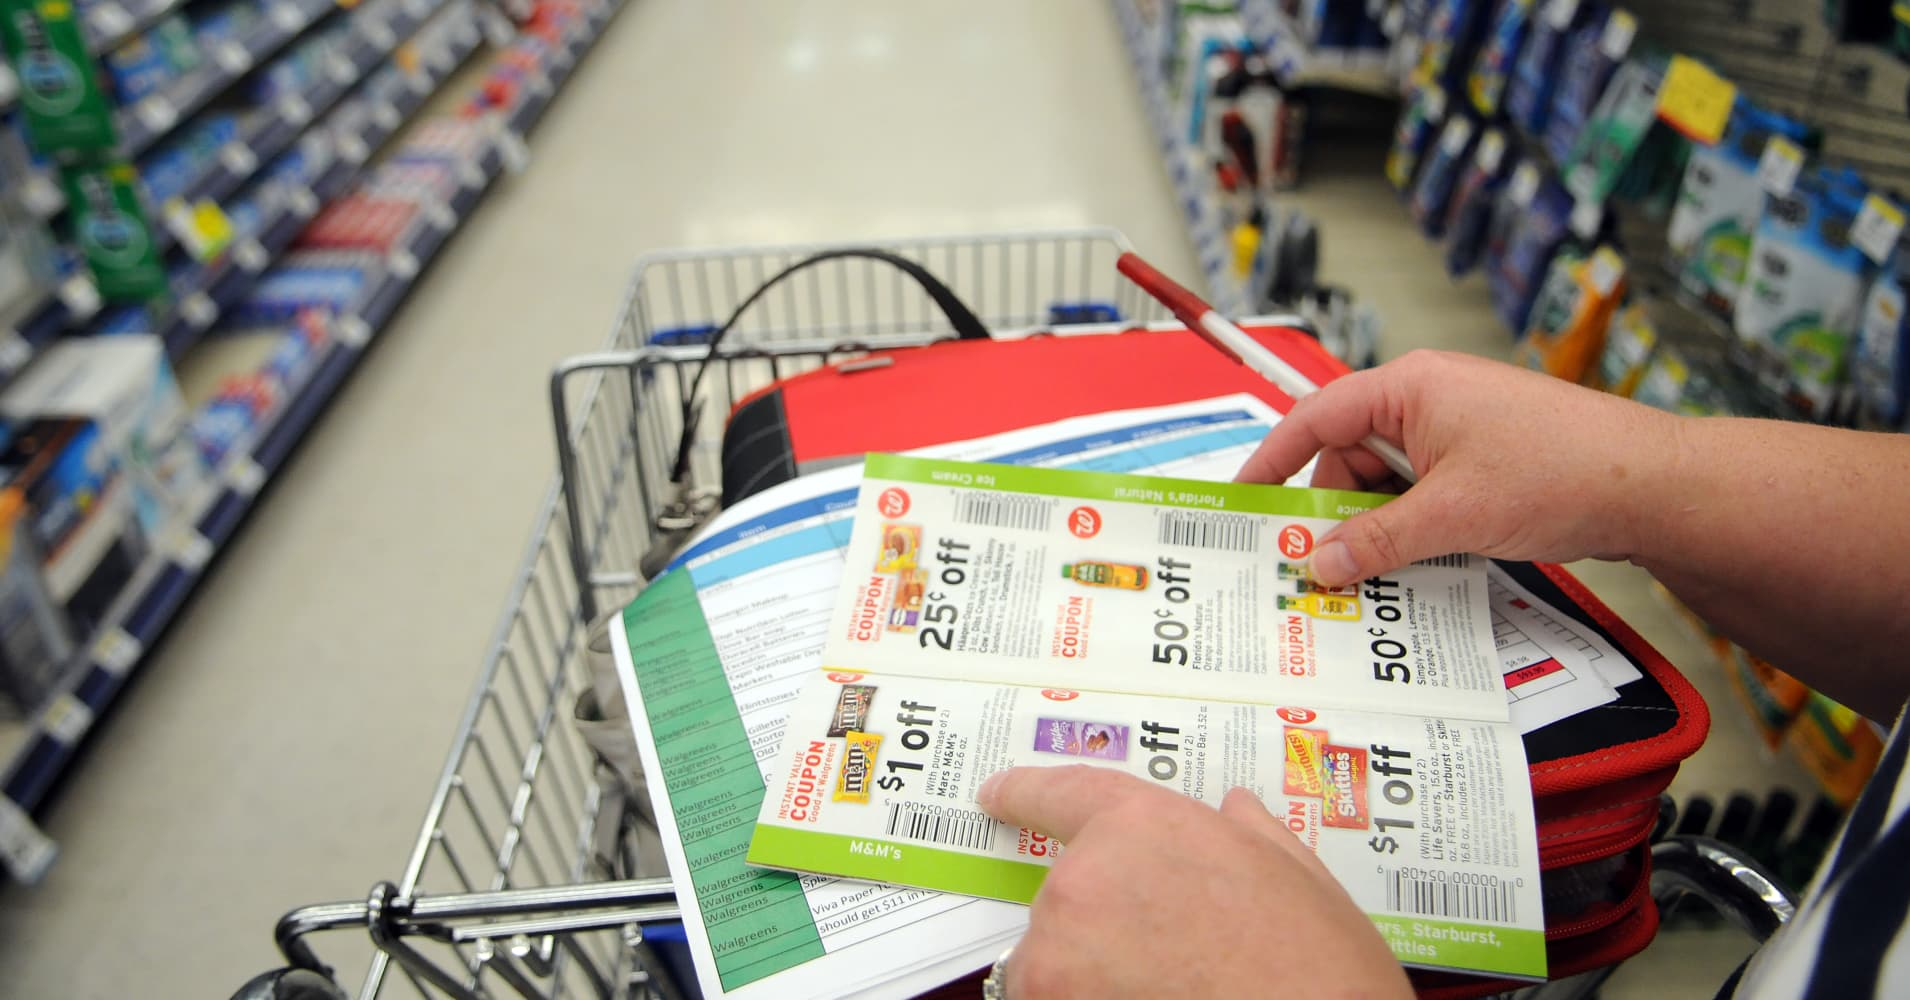 European couponing market